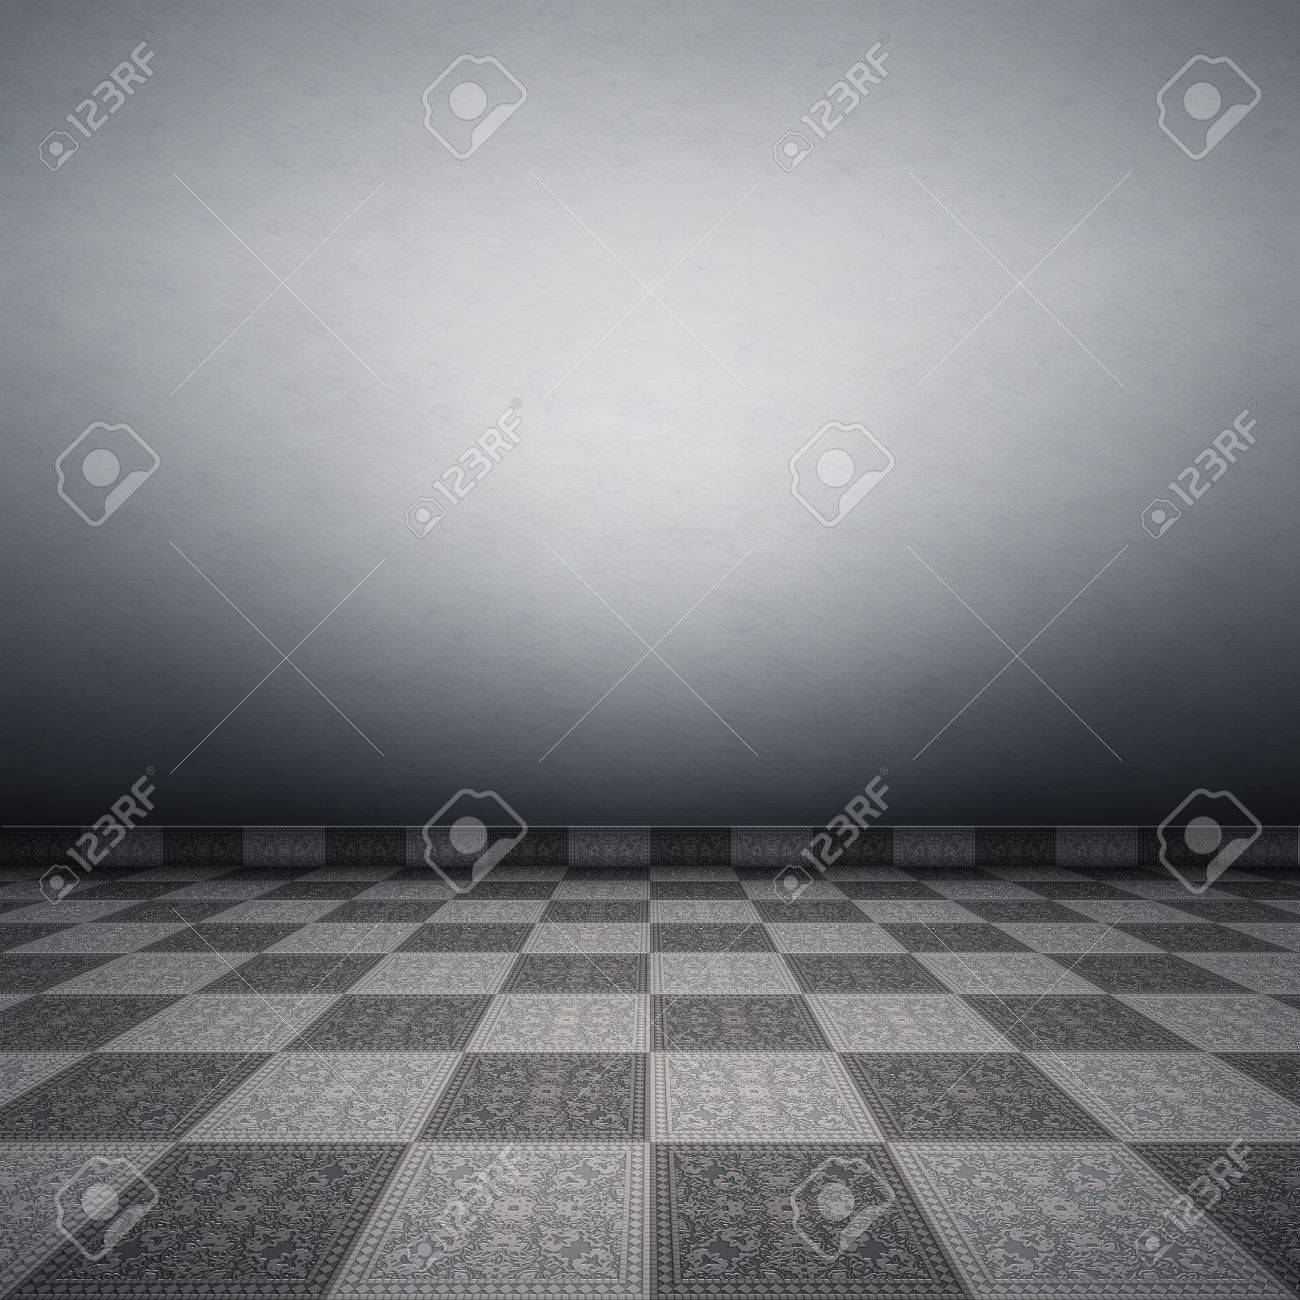 An image of a nice tiles floor background Stock Photo - 8139283